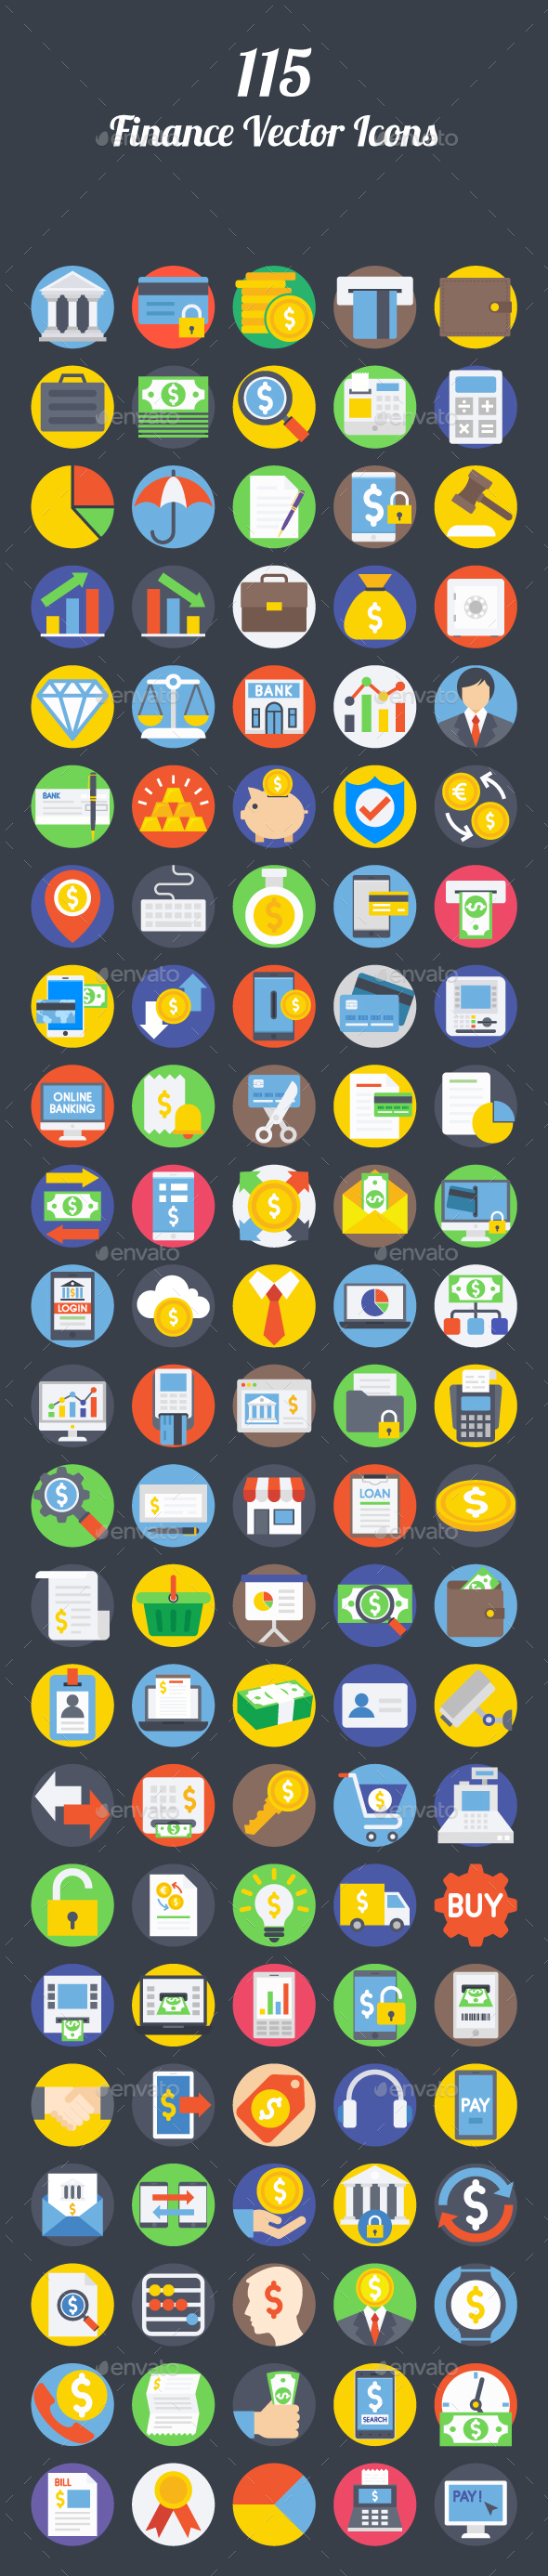 115 Finance Vector Icons - Icons